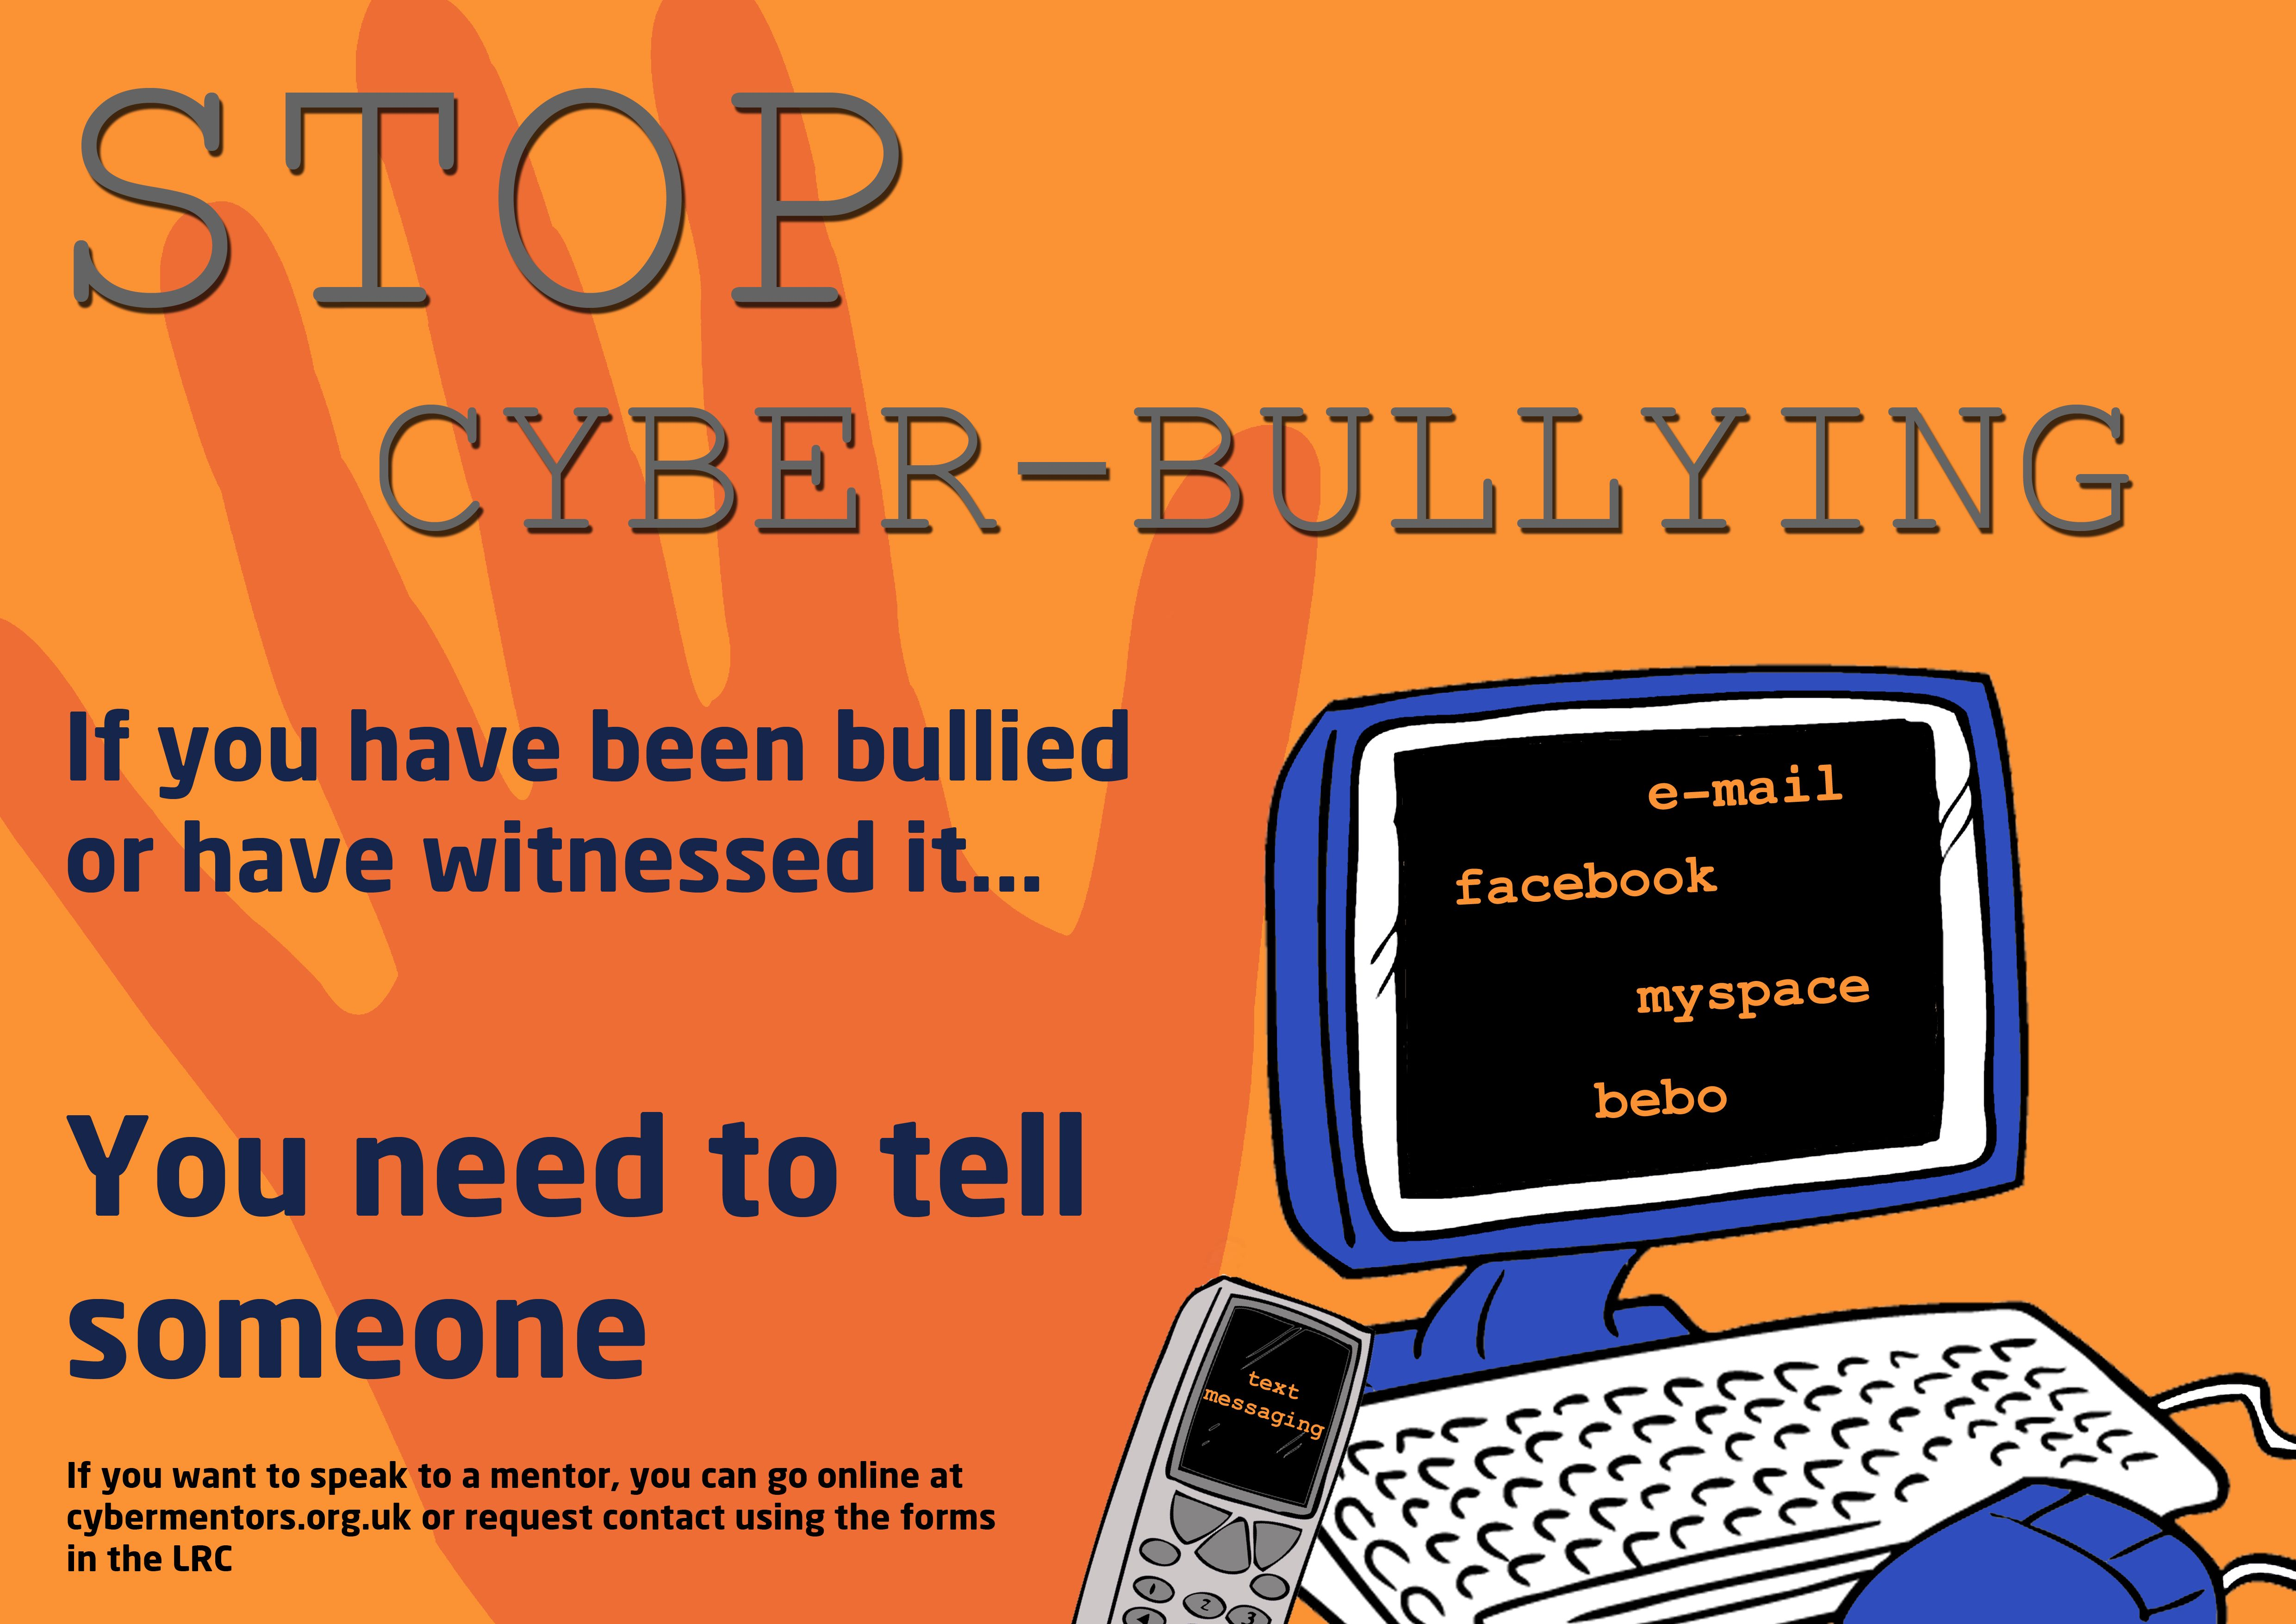 cyber bullying expo The history of cyberbullying with the prevalence of electronic technology in today's world, cyberbullying is a real and current concern for both kids and parents cyberbullying is any bullying activity that happens using electronic technology, such as cellphones, computers or tablets, according to stopbullyinggov.